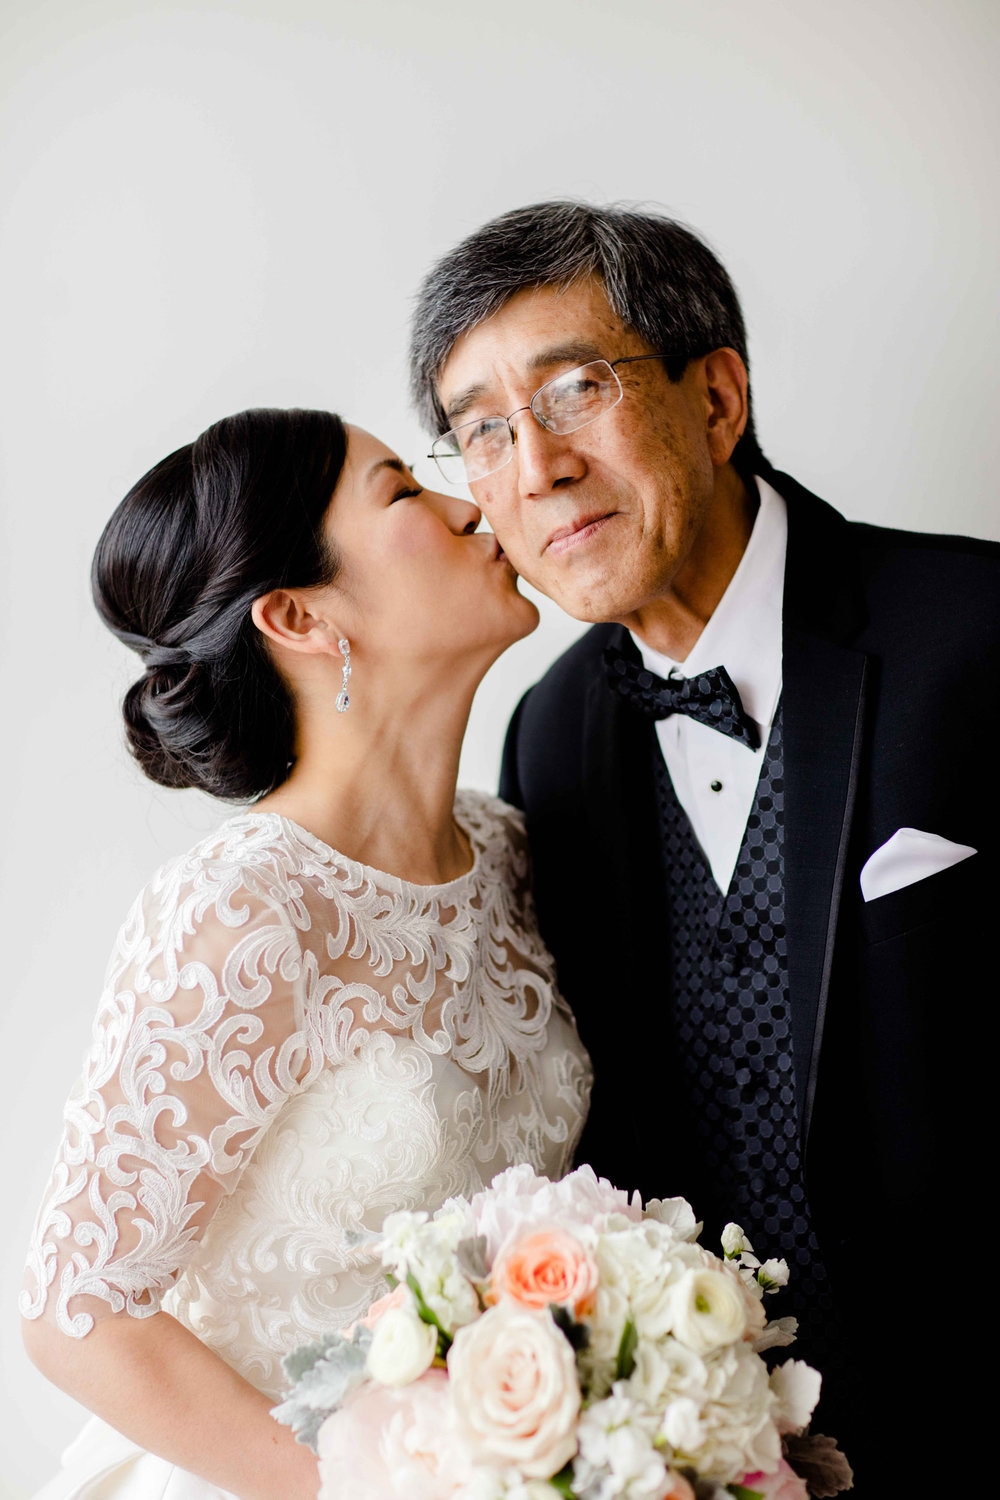 Bride's father sees her on wedding morning before ceremony at Art Institute of Chicago